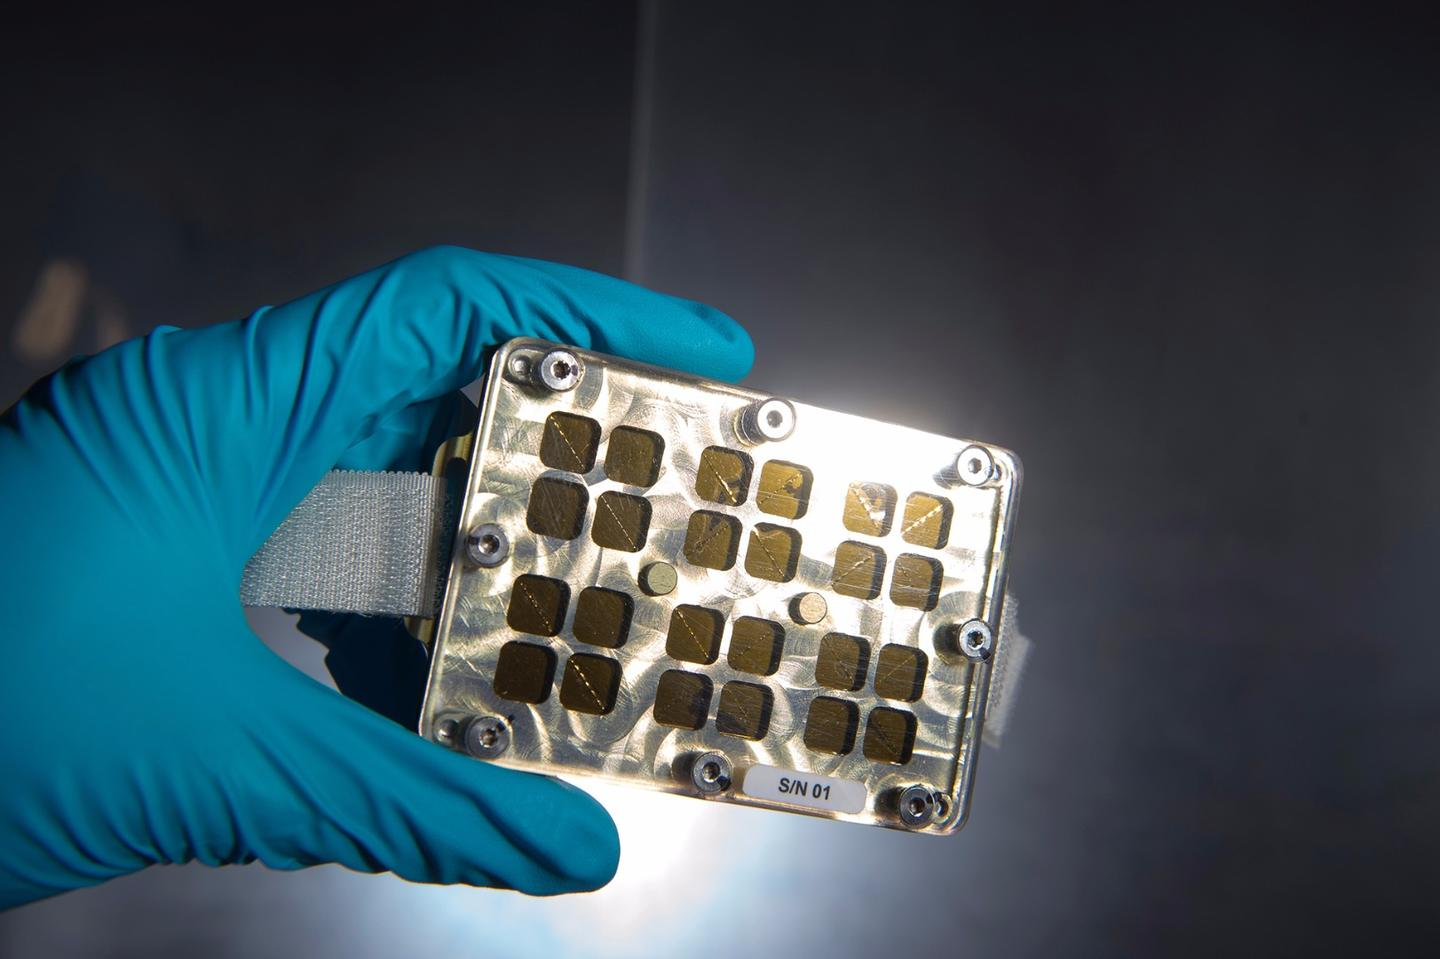 The Matiss experiment is investigating antibacterial properties of materials in space